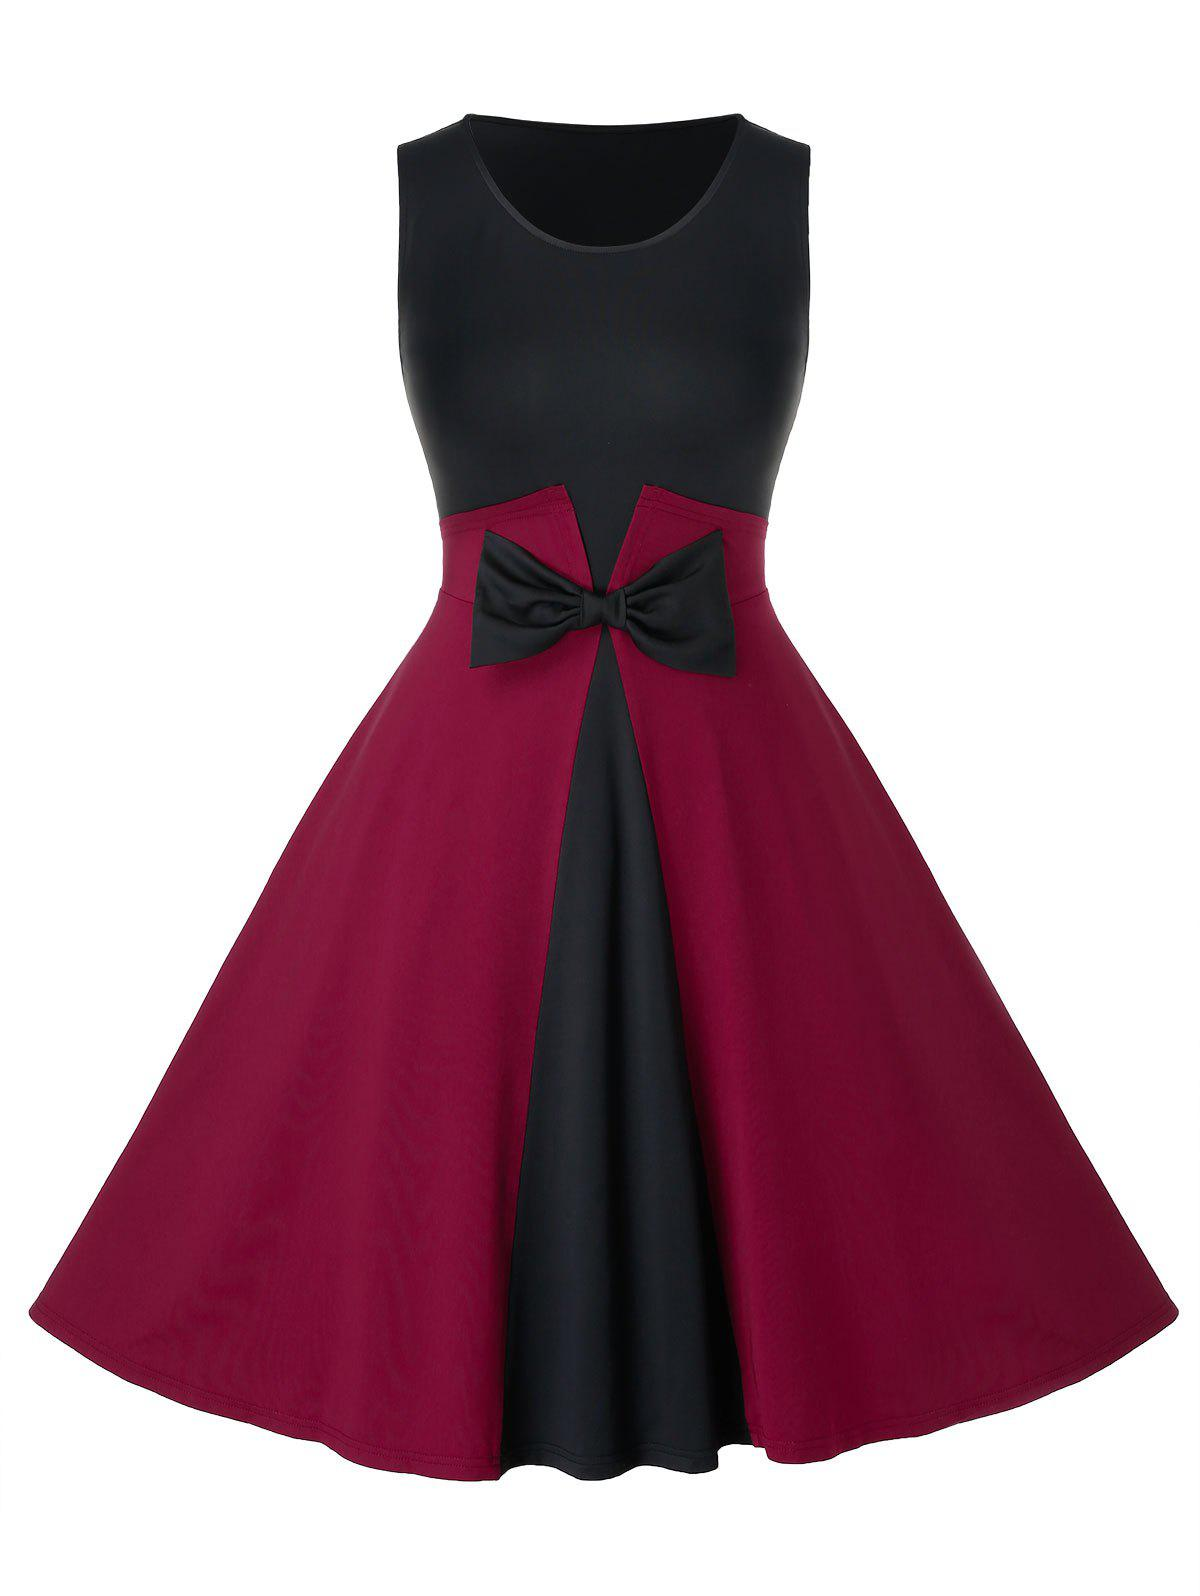 Plus Size Vintage Bowknot Two Tone Pin Up Dress - BLACK 2X